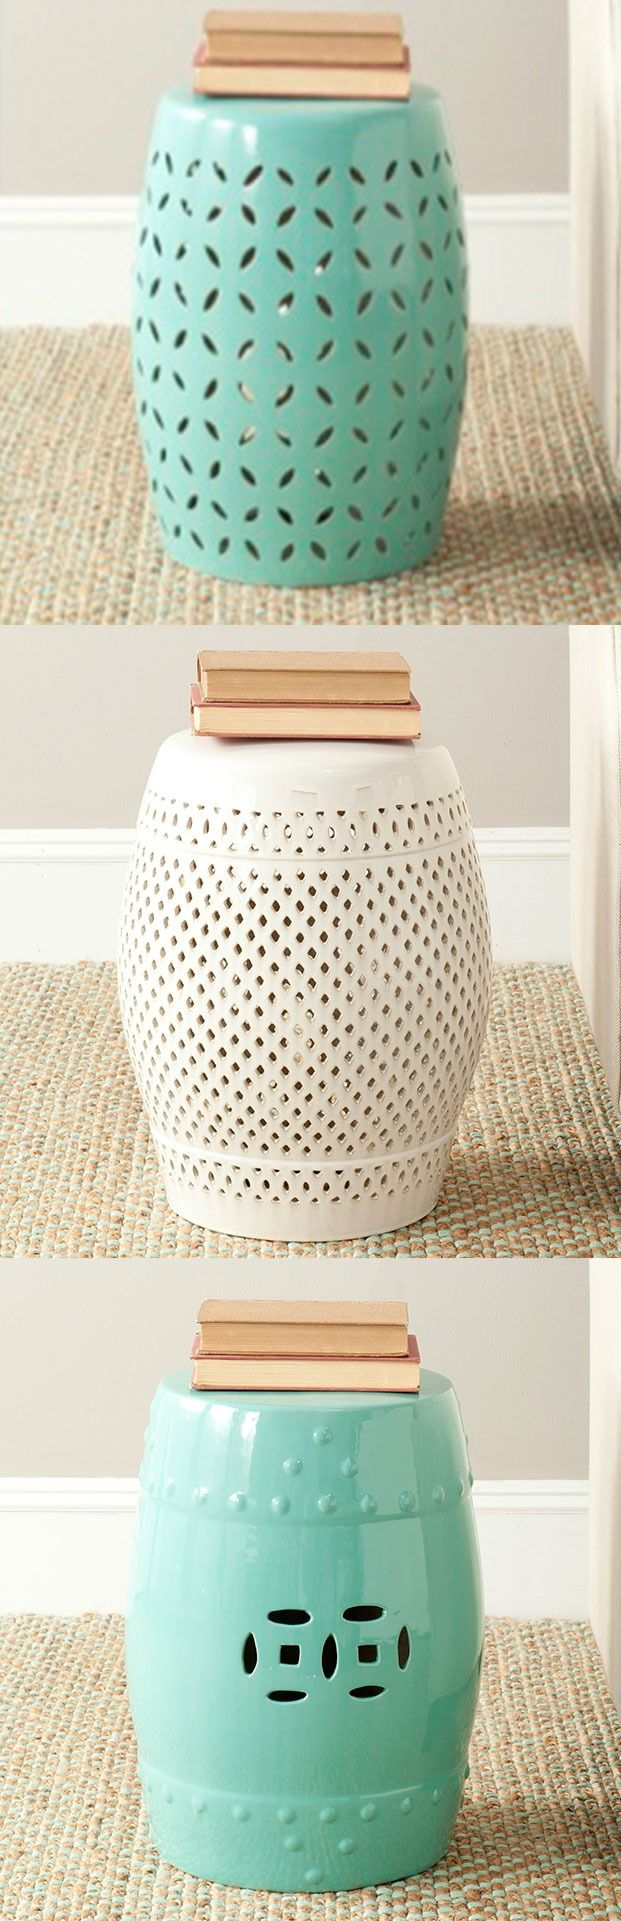 Perfect for indoors OR outdoors, our selection of ceramic stools are a great addition to your home.